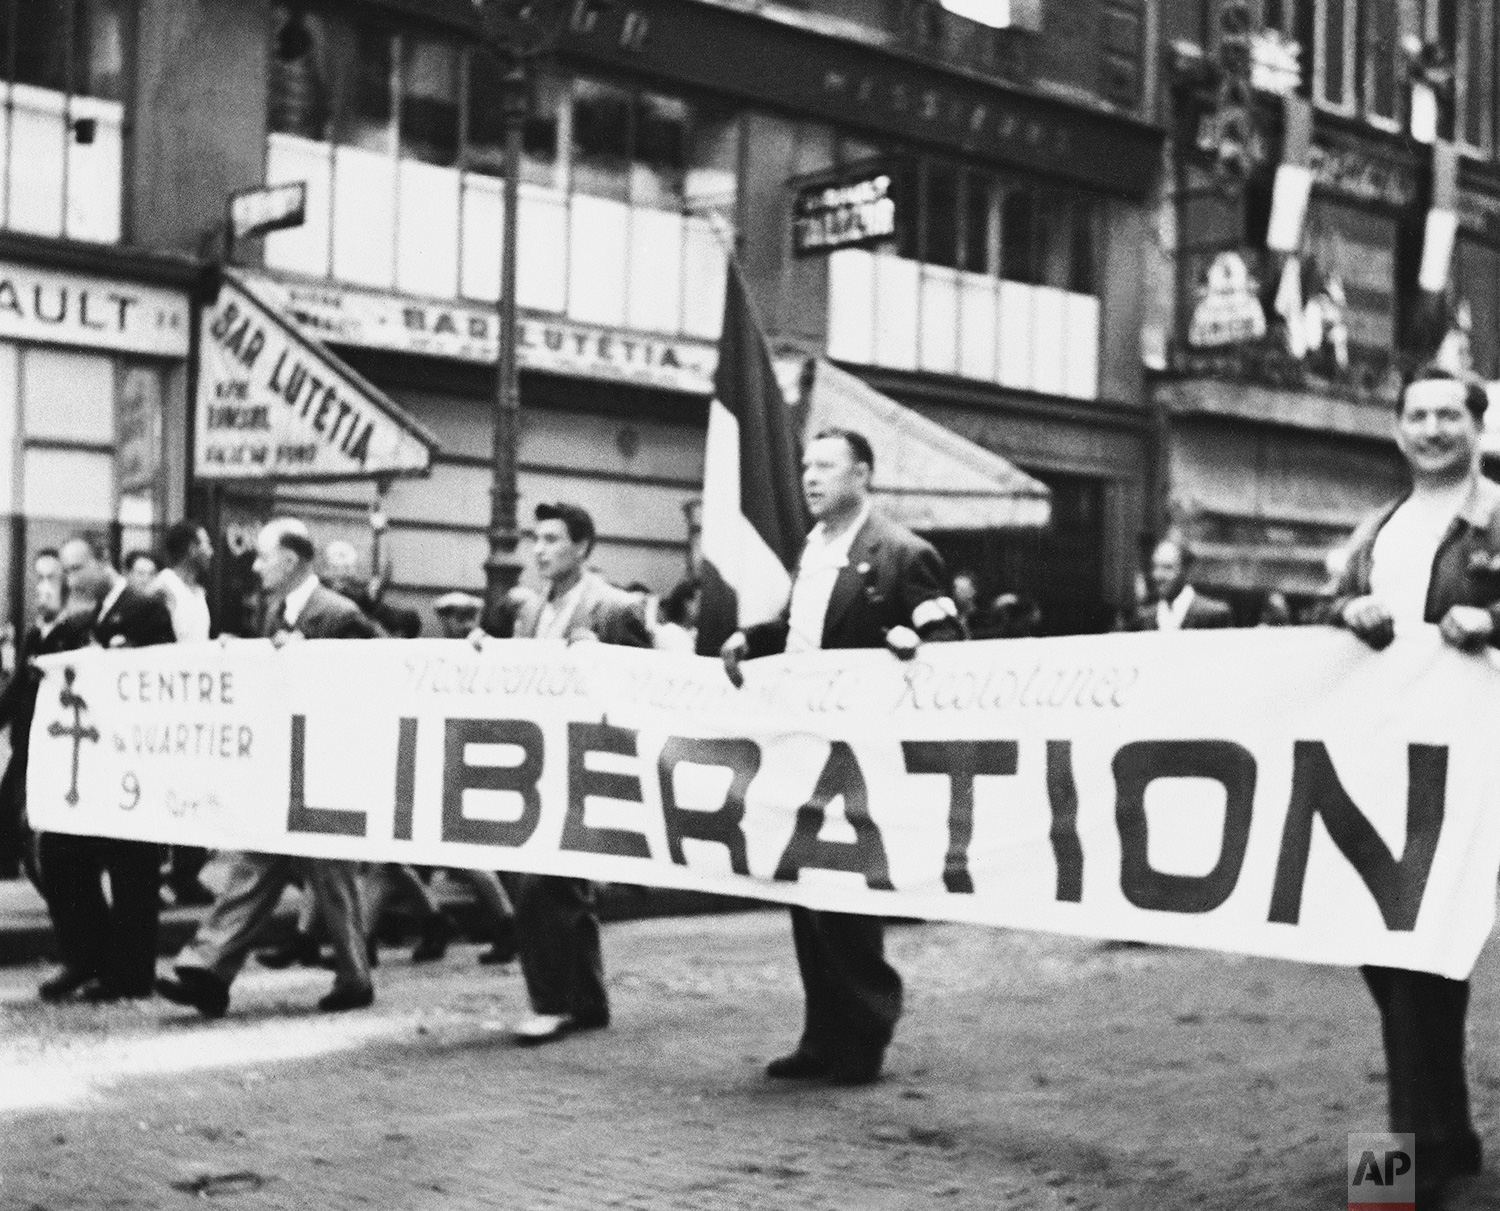 Carrying a huge banner proclaiming the liberation of Paris, men of the Maqui march through the city's streets in Paris on August 28, 1944. Their jubilitation was a bit hasty, however, for peace has not yet come to liberated Paris. Mopping up of snipers continues, with the job of restoring order in the French capital left to General De Gaulle. (AP Photo)